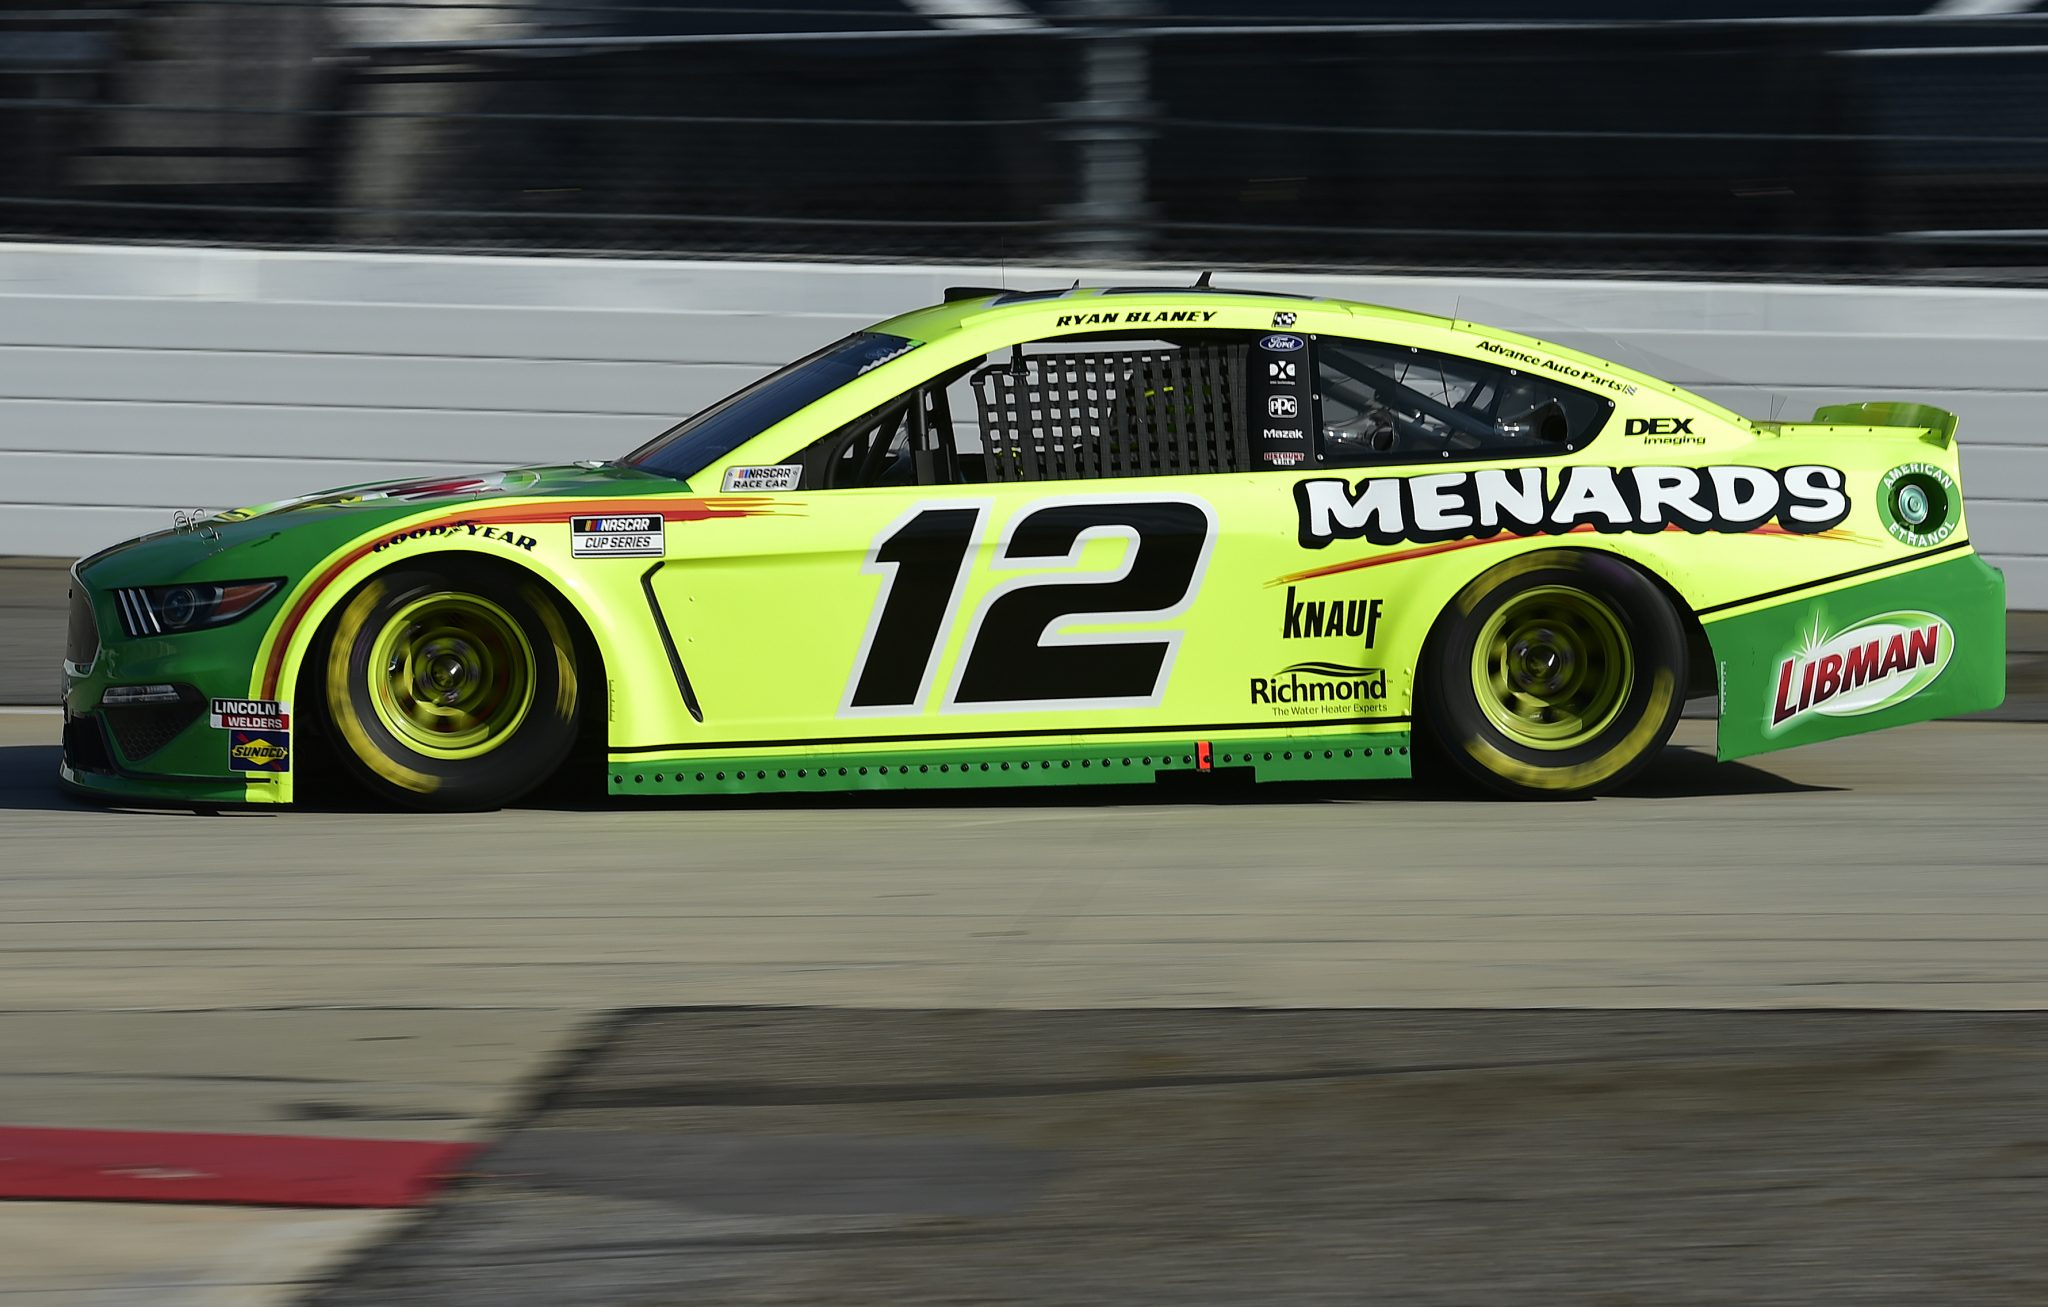 MARTINSVILLE, VIRGINIA - NOVEMBER 01: Ryan Blaney, driver of the #12 Menards/Libman Ford, drives during the NASCAR Cup Series Xfinity 500 at Martinsville Speedway on November 01, 2020 in Martinsville, Virginia. (Photo by Jared C. Tilton/Getty Images) | Getty Images